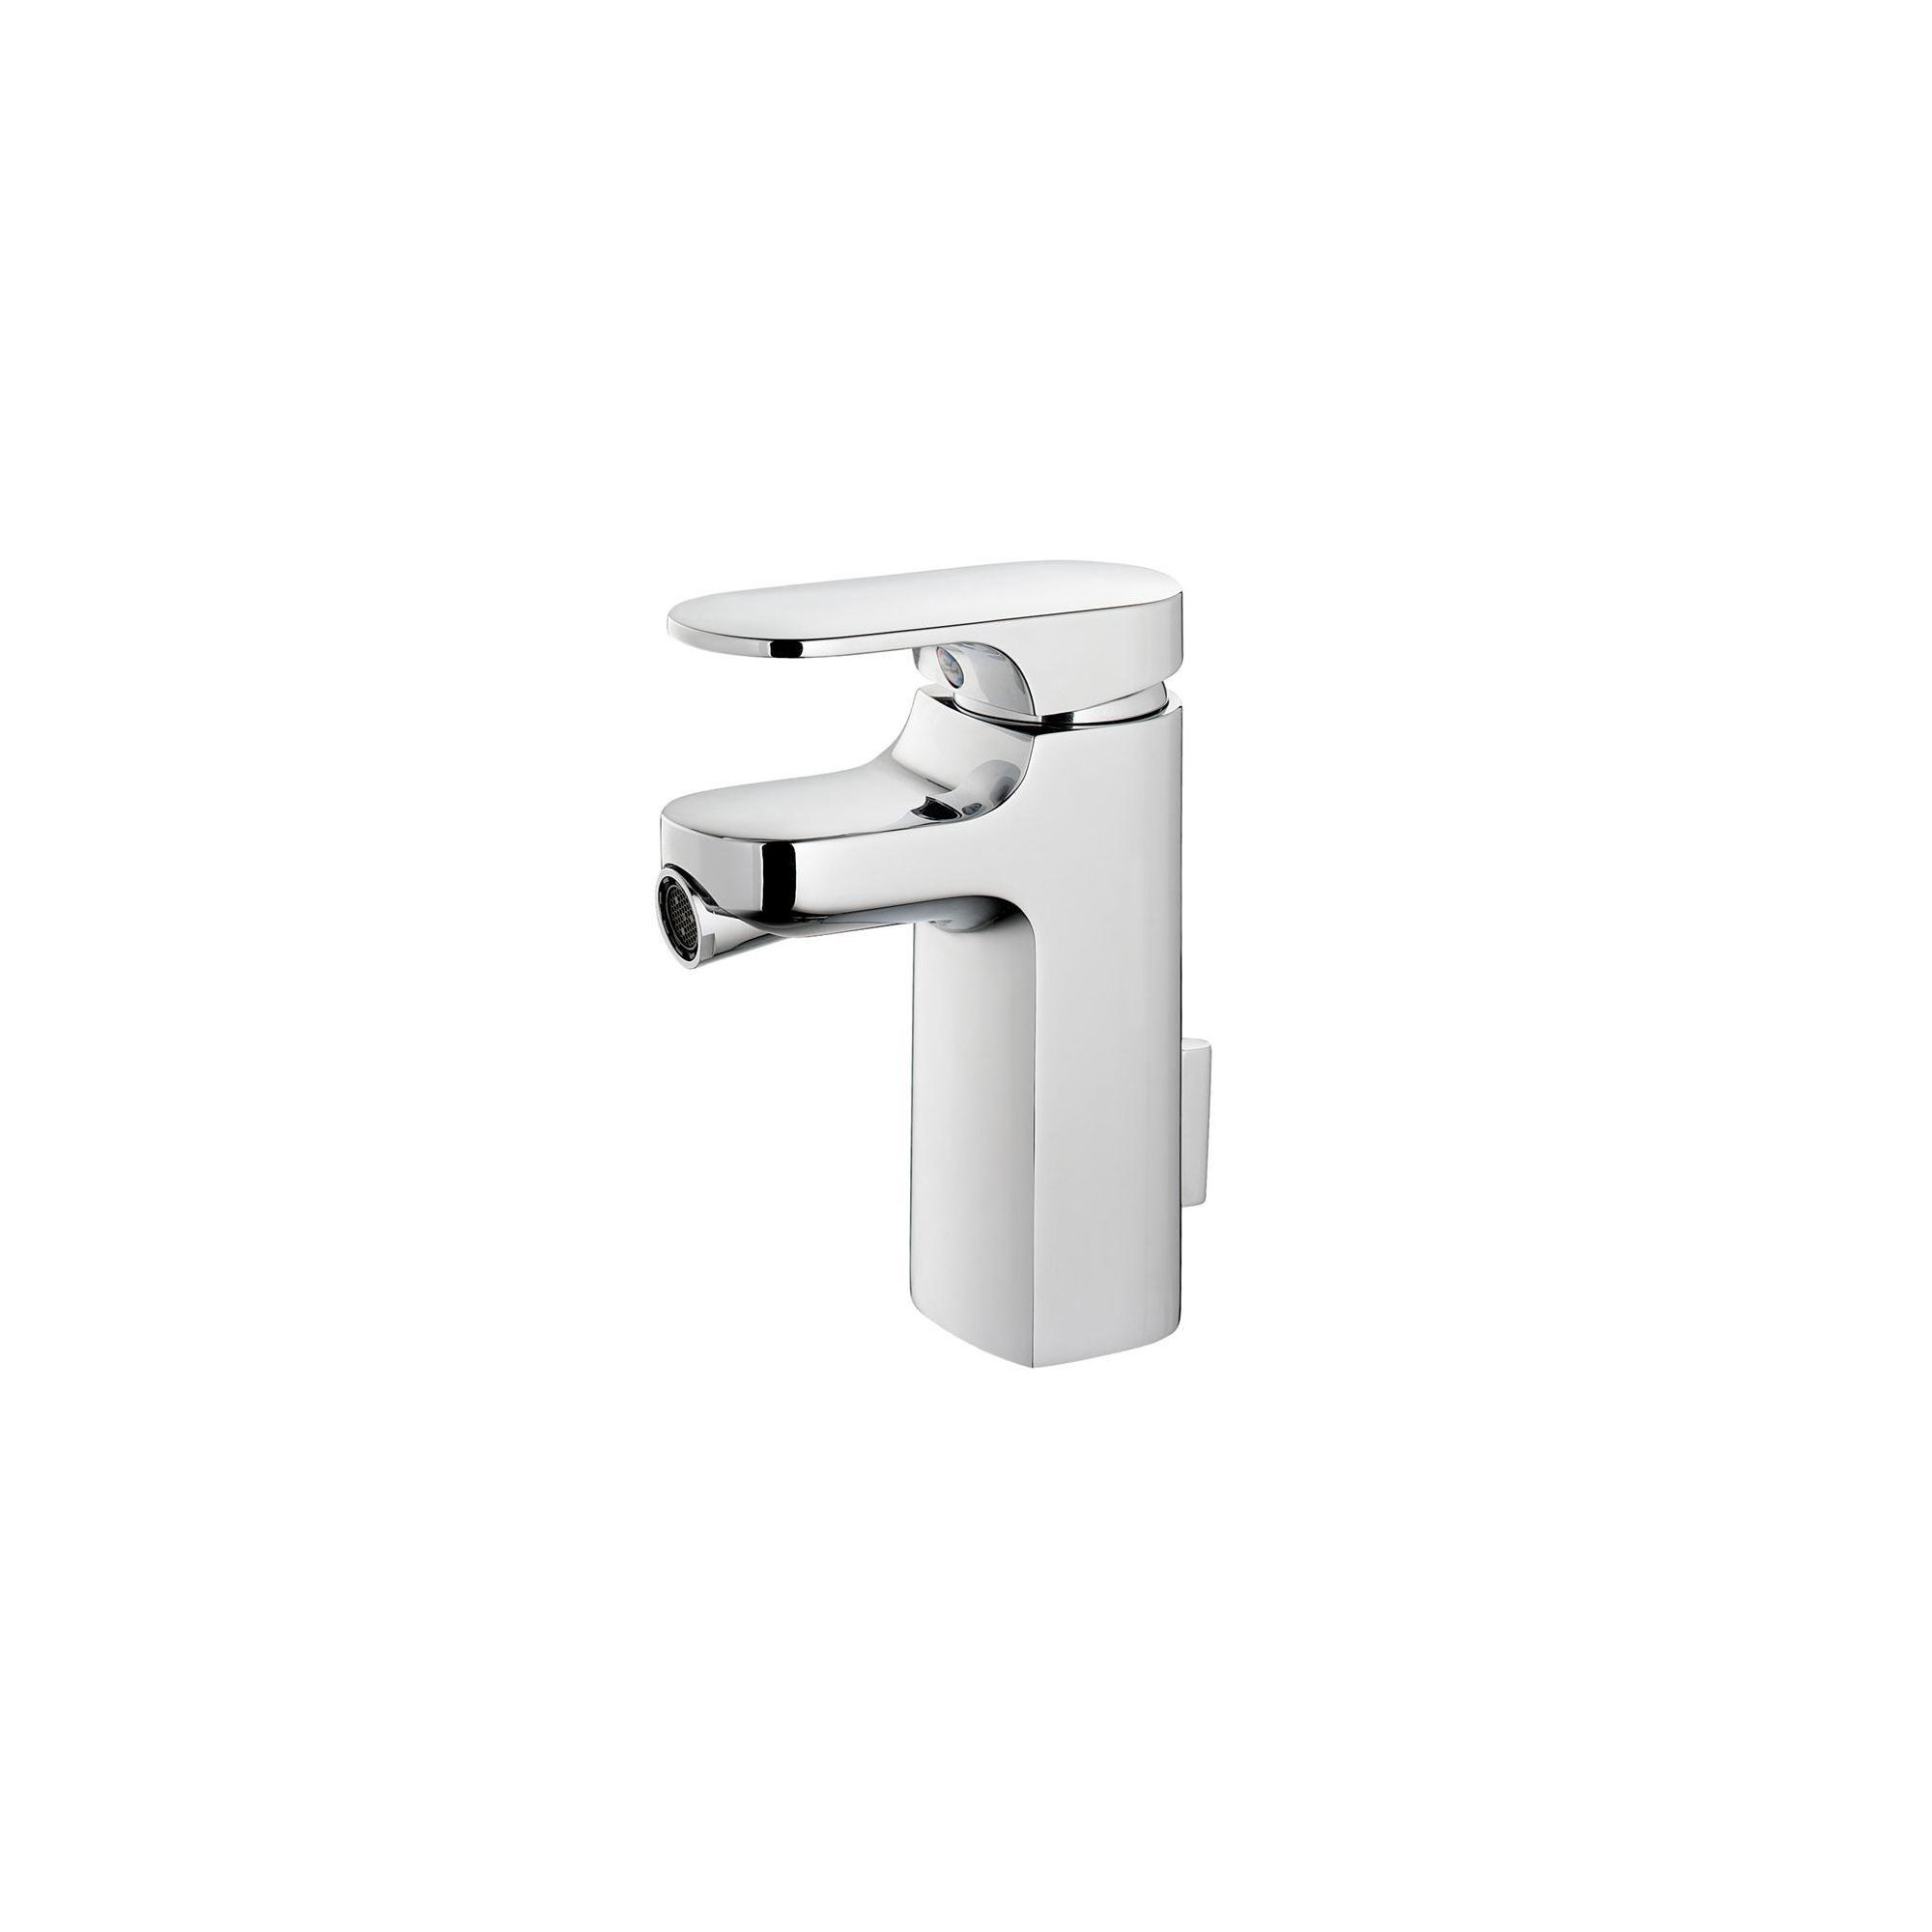 Ideal Standard Moments Mono Bidet Mixer Tap Chrome including Pop-Up Waste at Tesco Direct